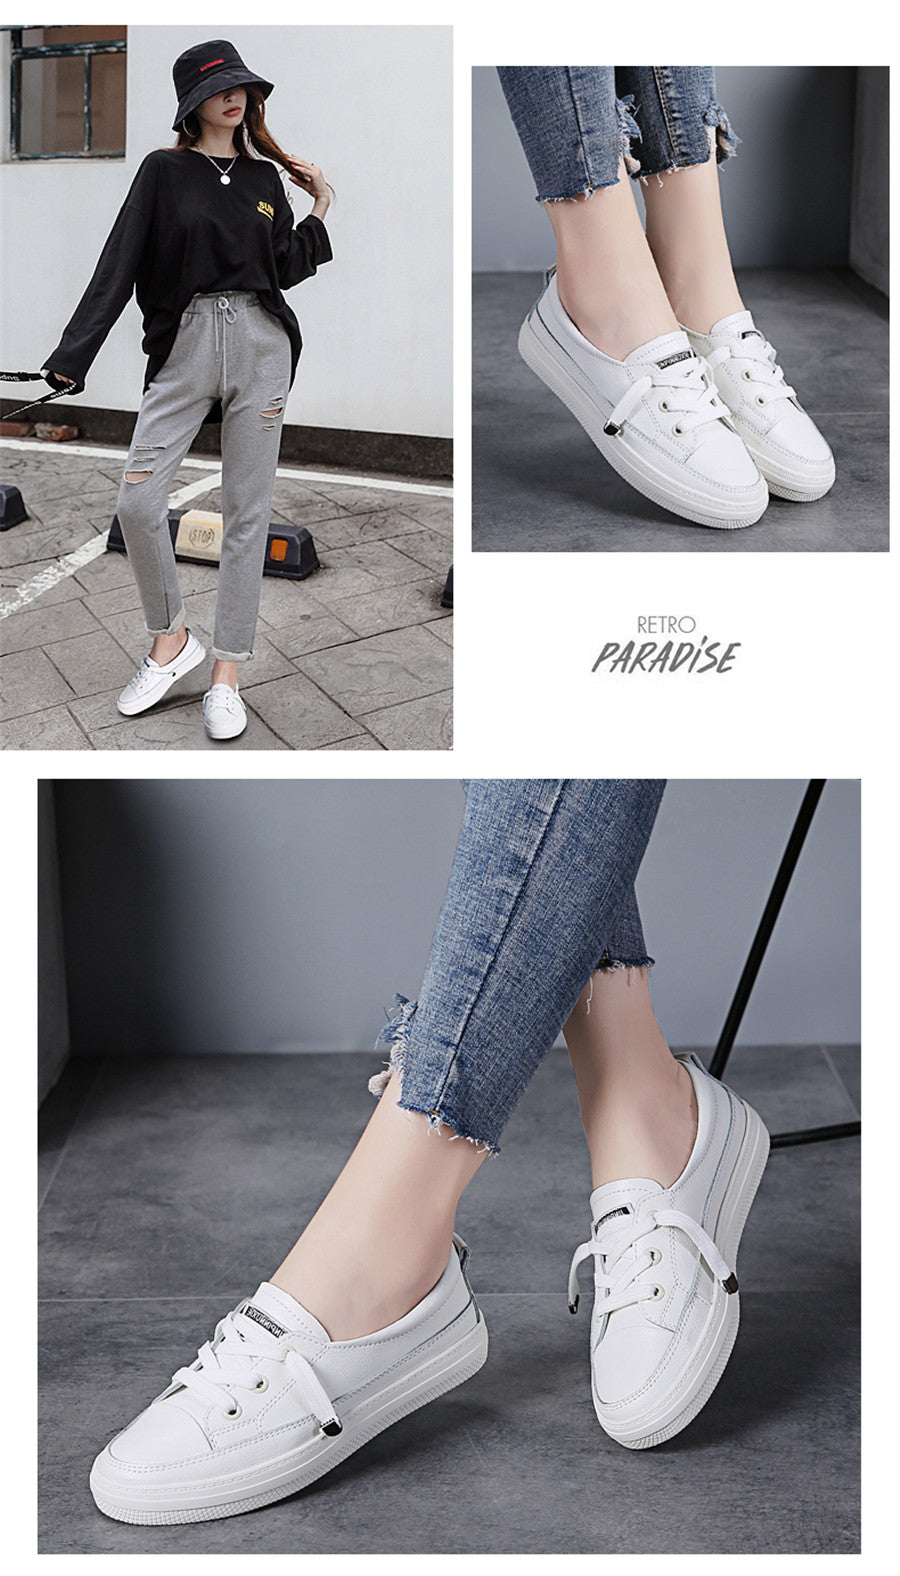 STQ Autumn Women Flats Sneakers Shoes Ladies Lace-up Casual Shoes PU Leather Shoes Women Casual White Shoes Sneakers 768